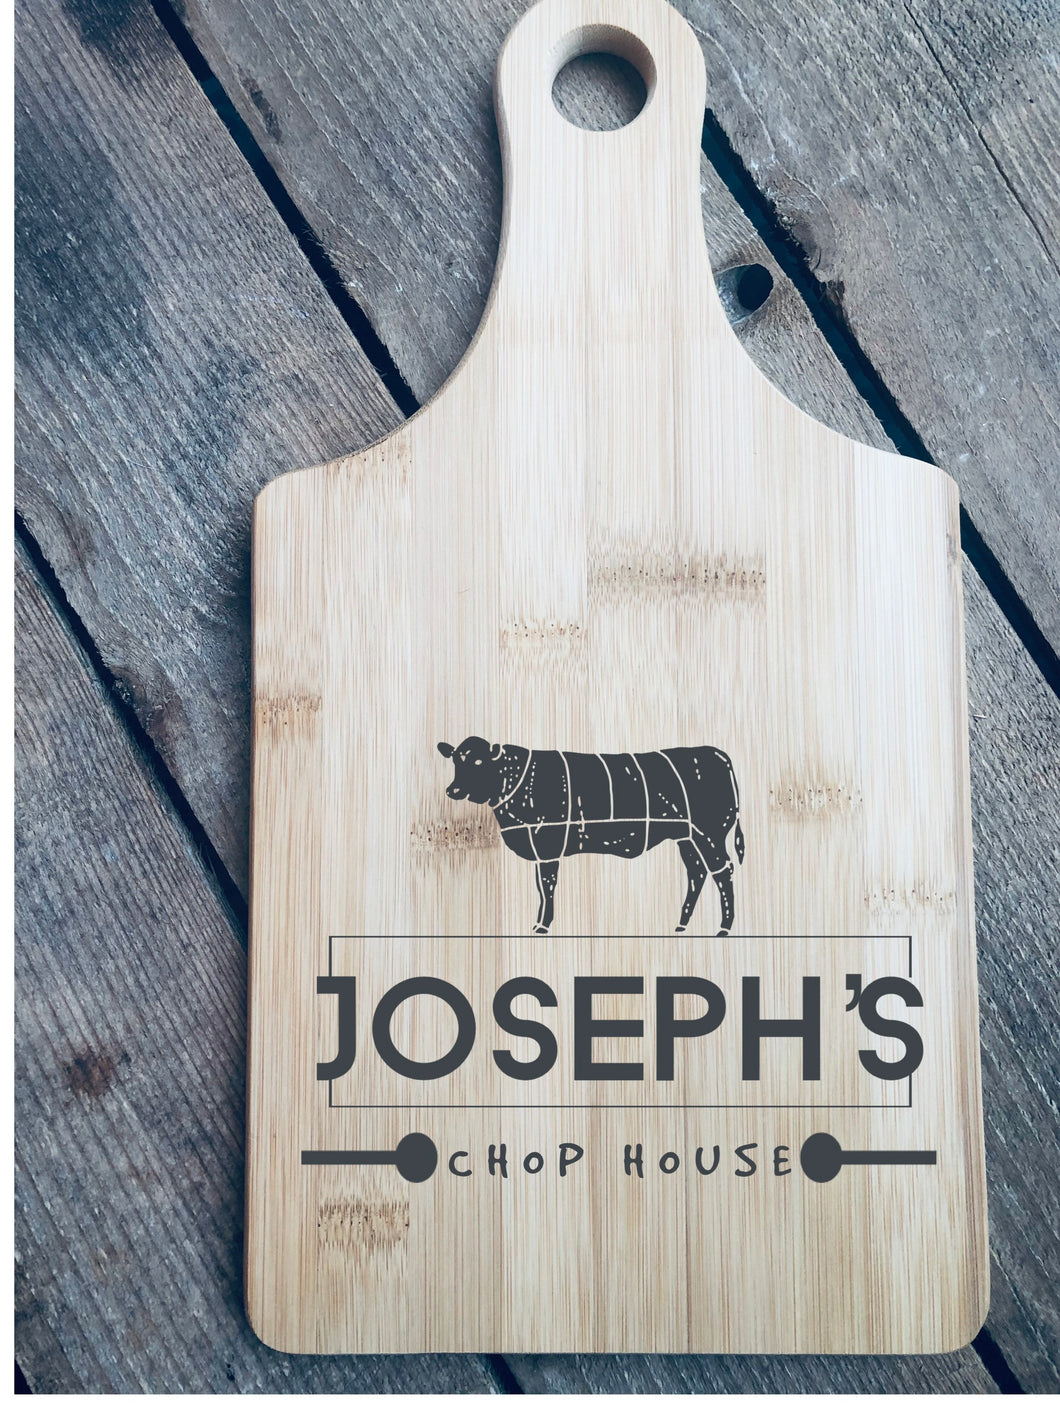 Custom Cutting Board|Chop House